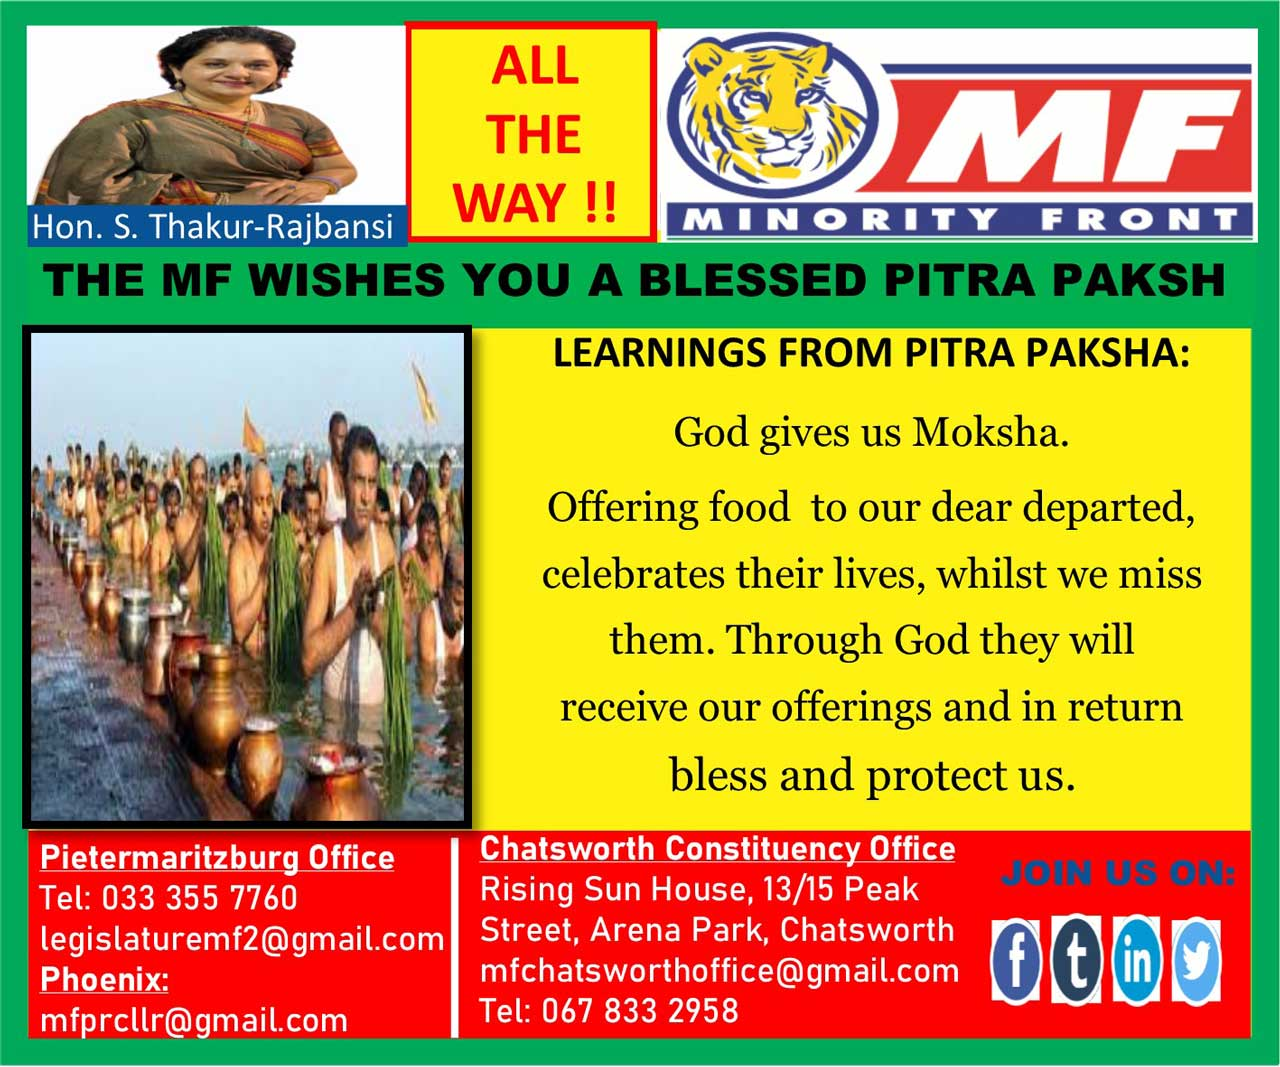 The Minority Front Wishes You a Blessed Pitar Paksh